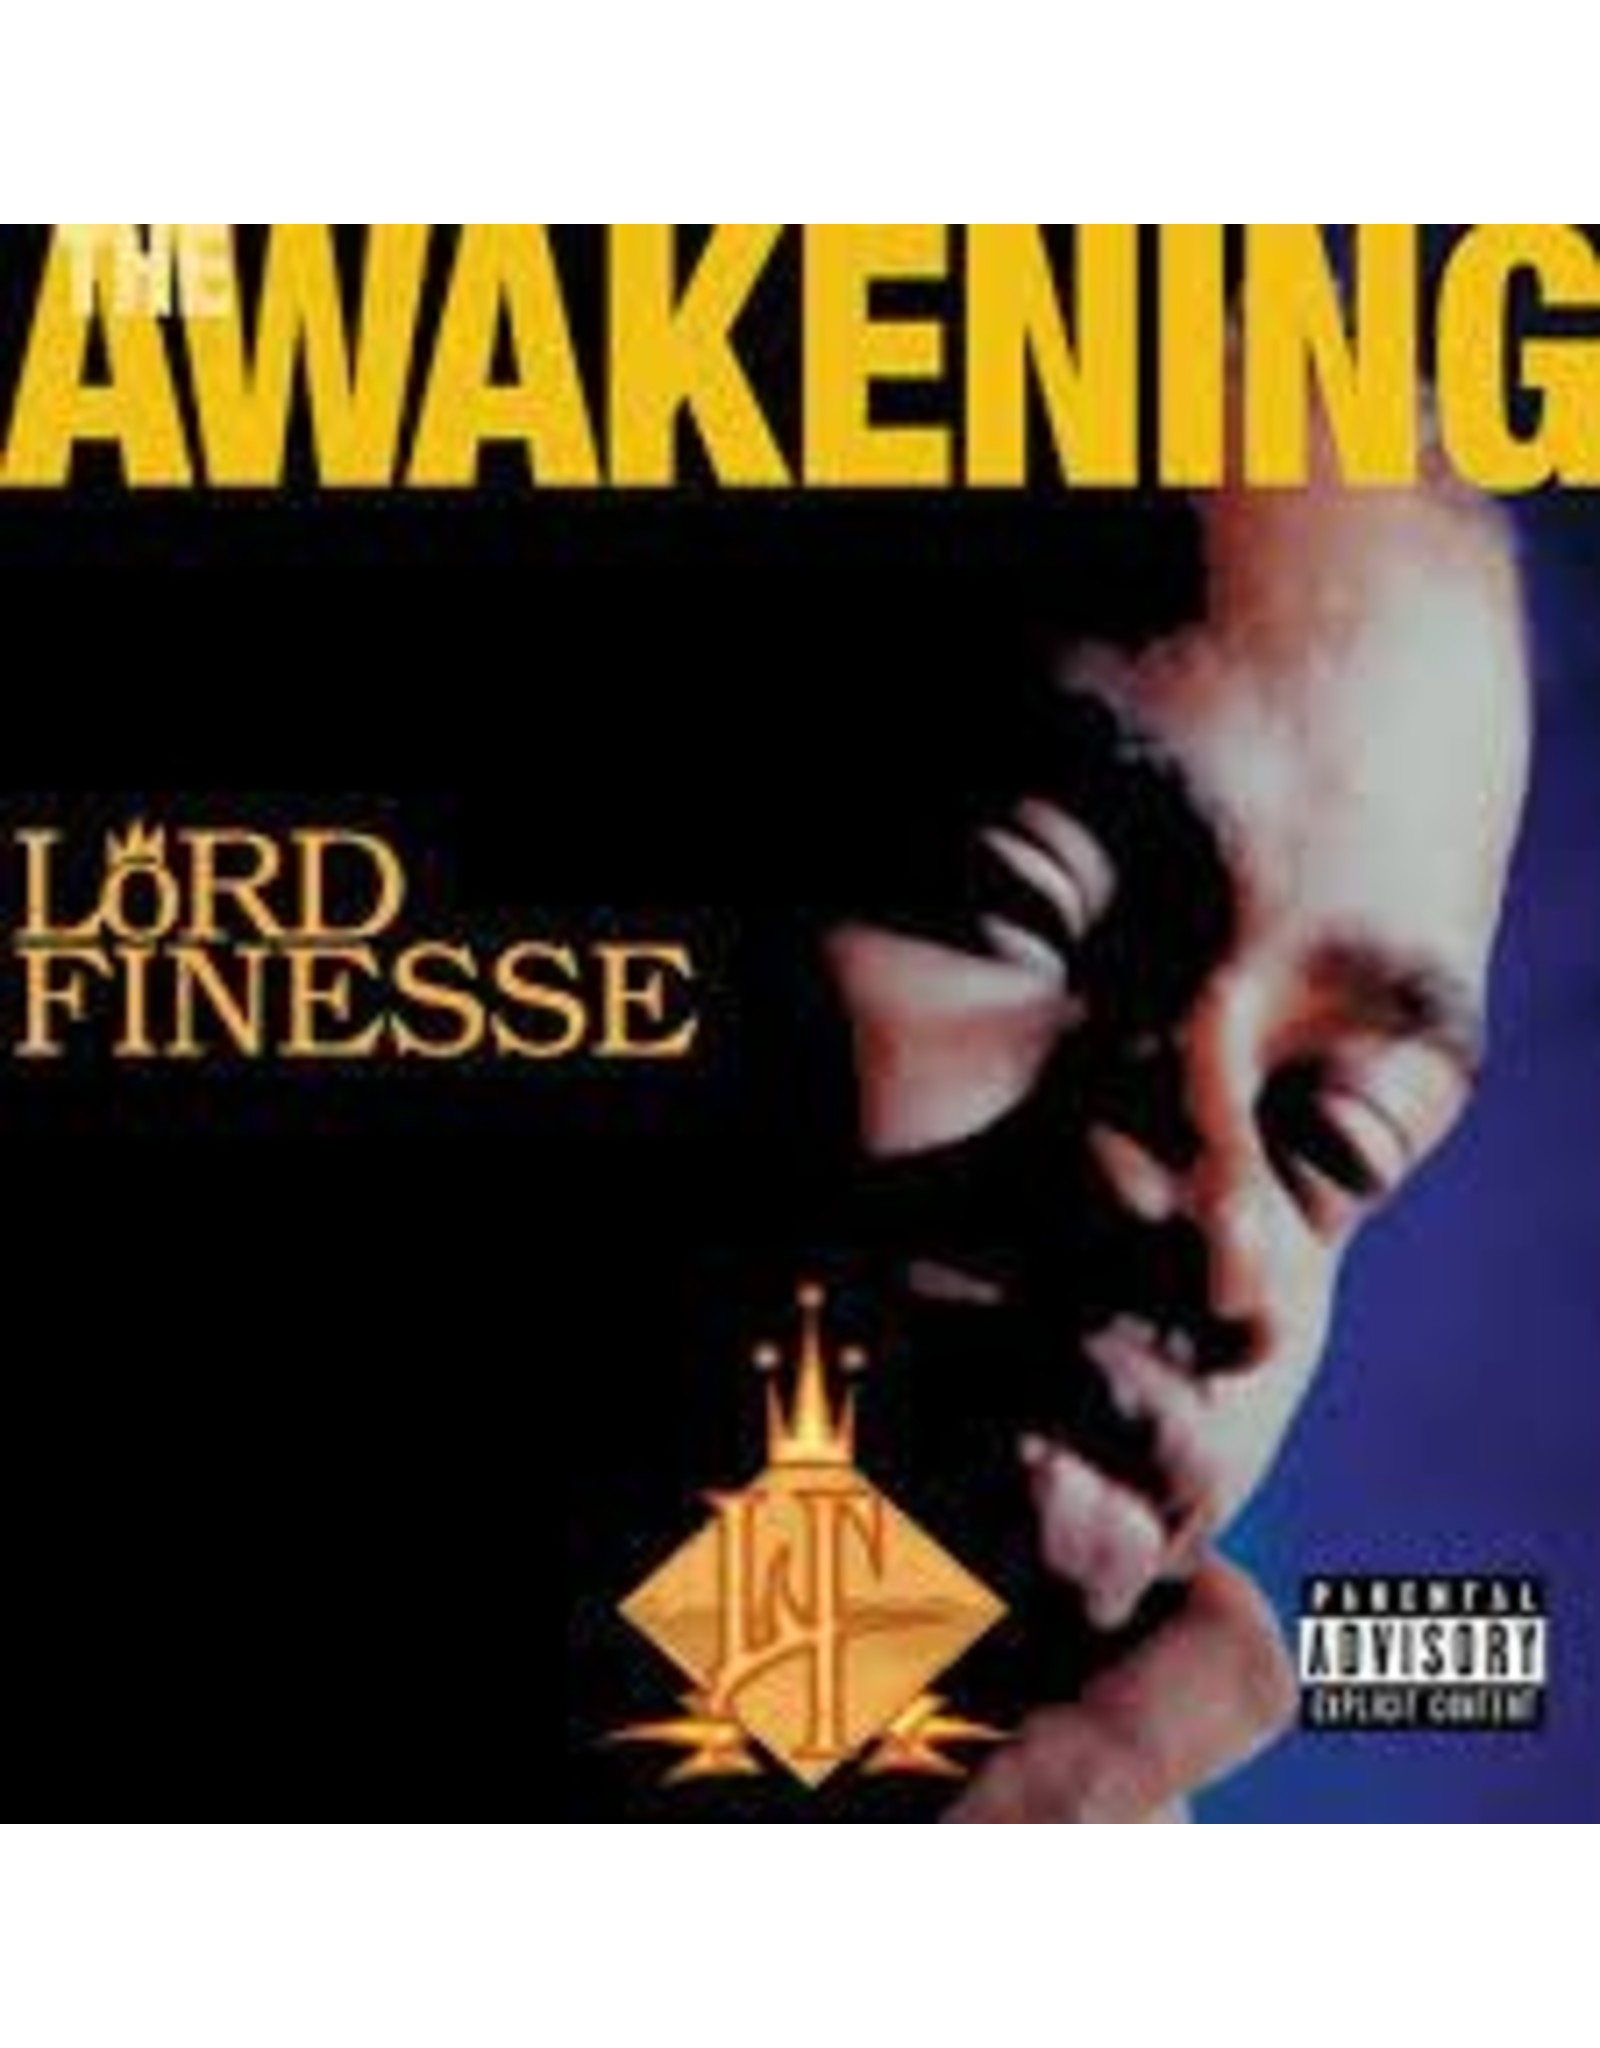 Lord Finesse - The Awakening 25th Anniversary LP